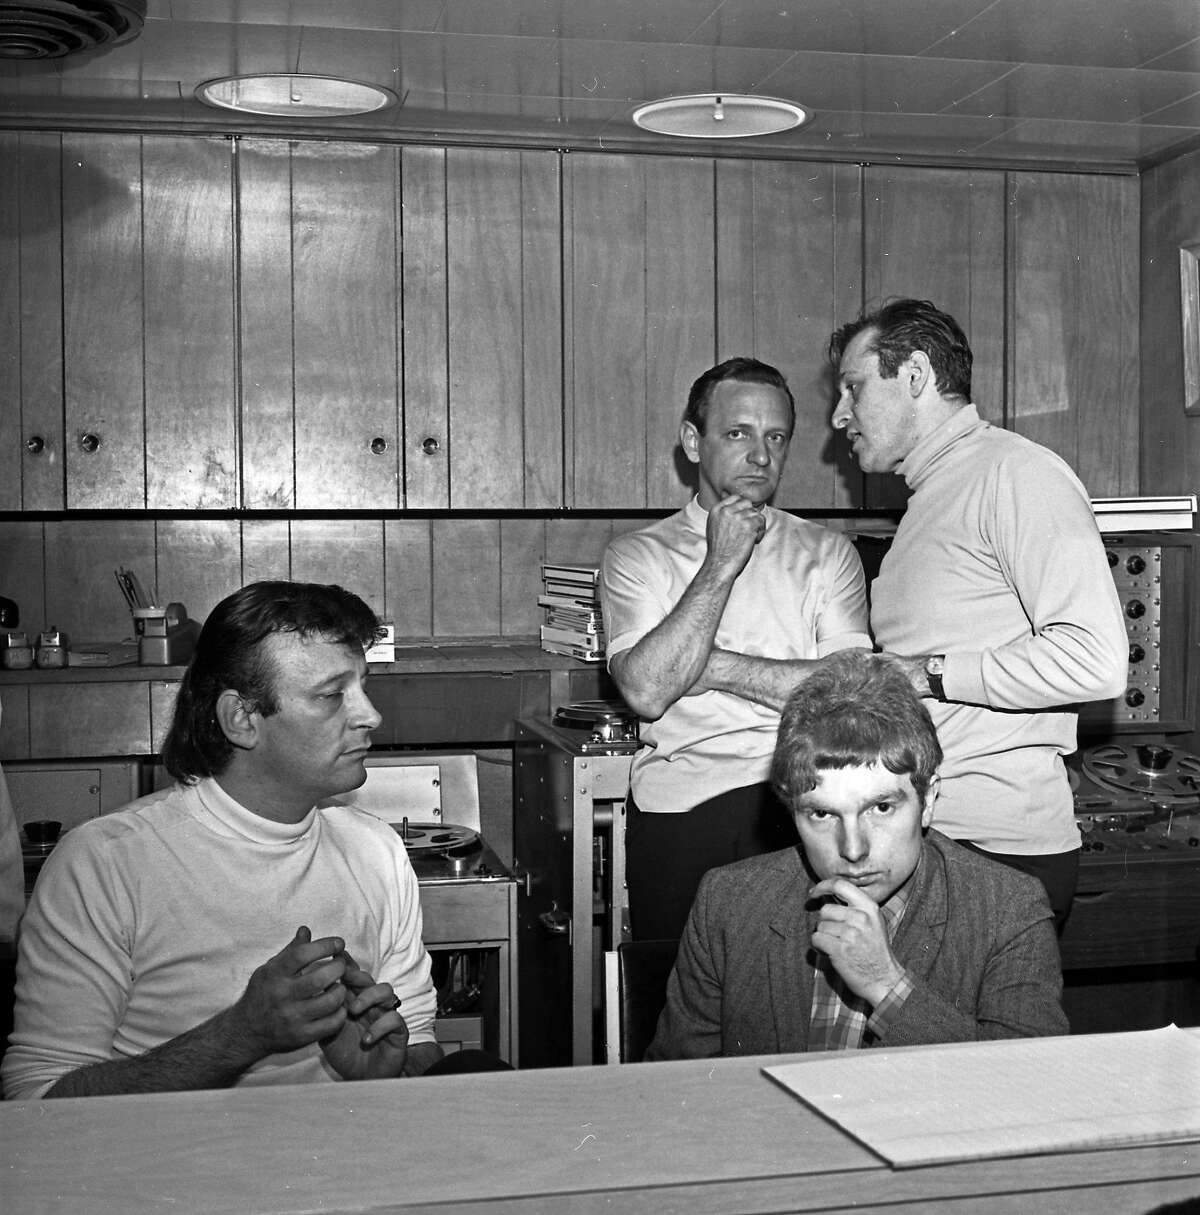 Forefront, L-R: Songwriter/producer Bert Berns, the subject of